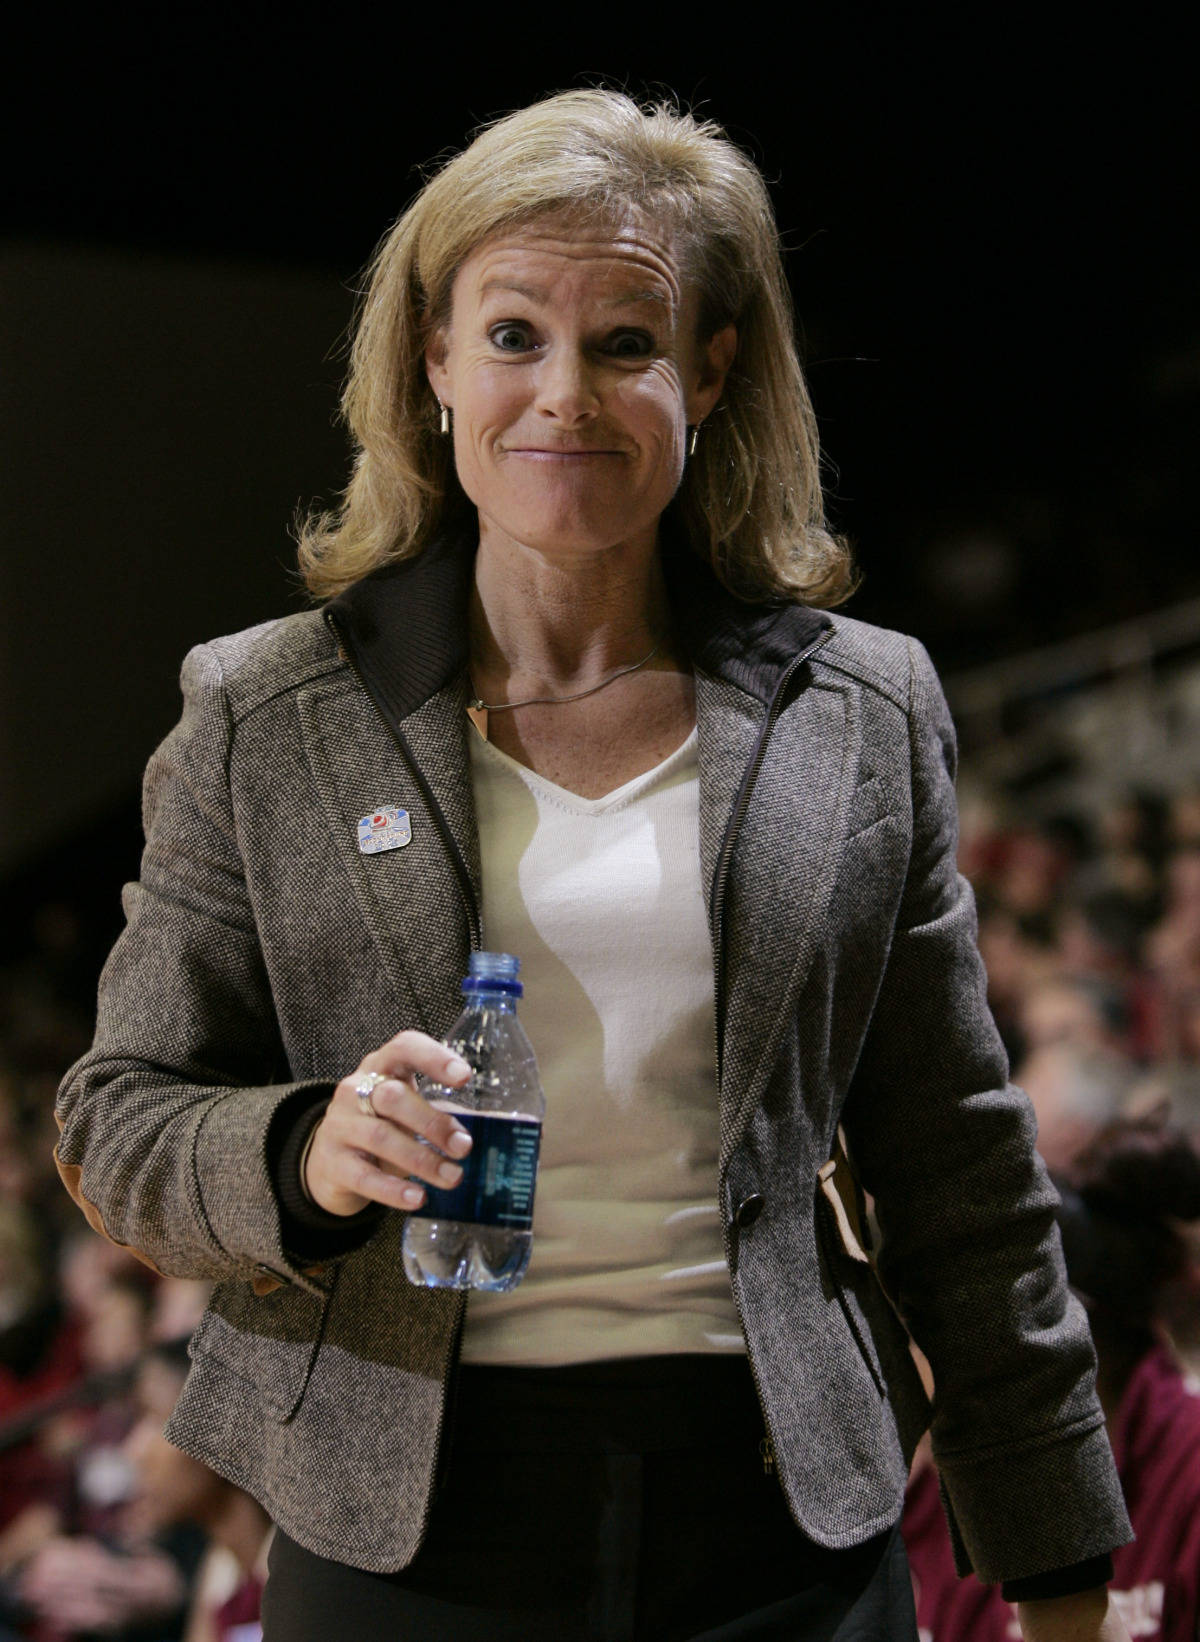 Florida State coach Sue Semrau smiles late in the second half against Stanford during their second-round game in the NCAA women's basketball tournament in Stanford, Calif., Monday, March 19, 2007. Florida State upset Stanford 68-61. (AP Photo/Paul Sakuma)